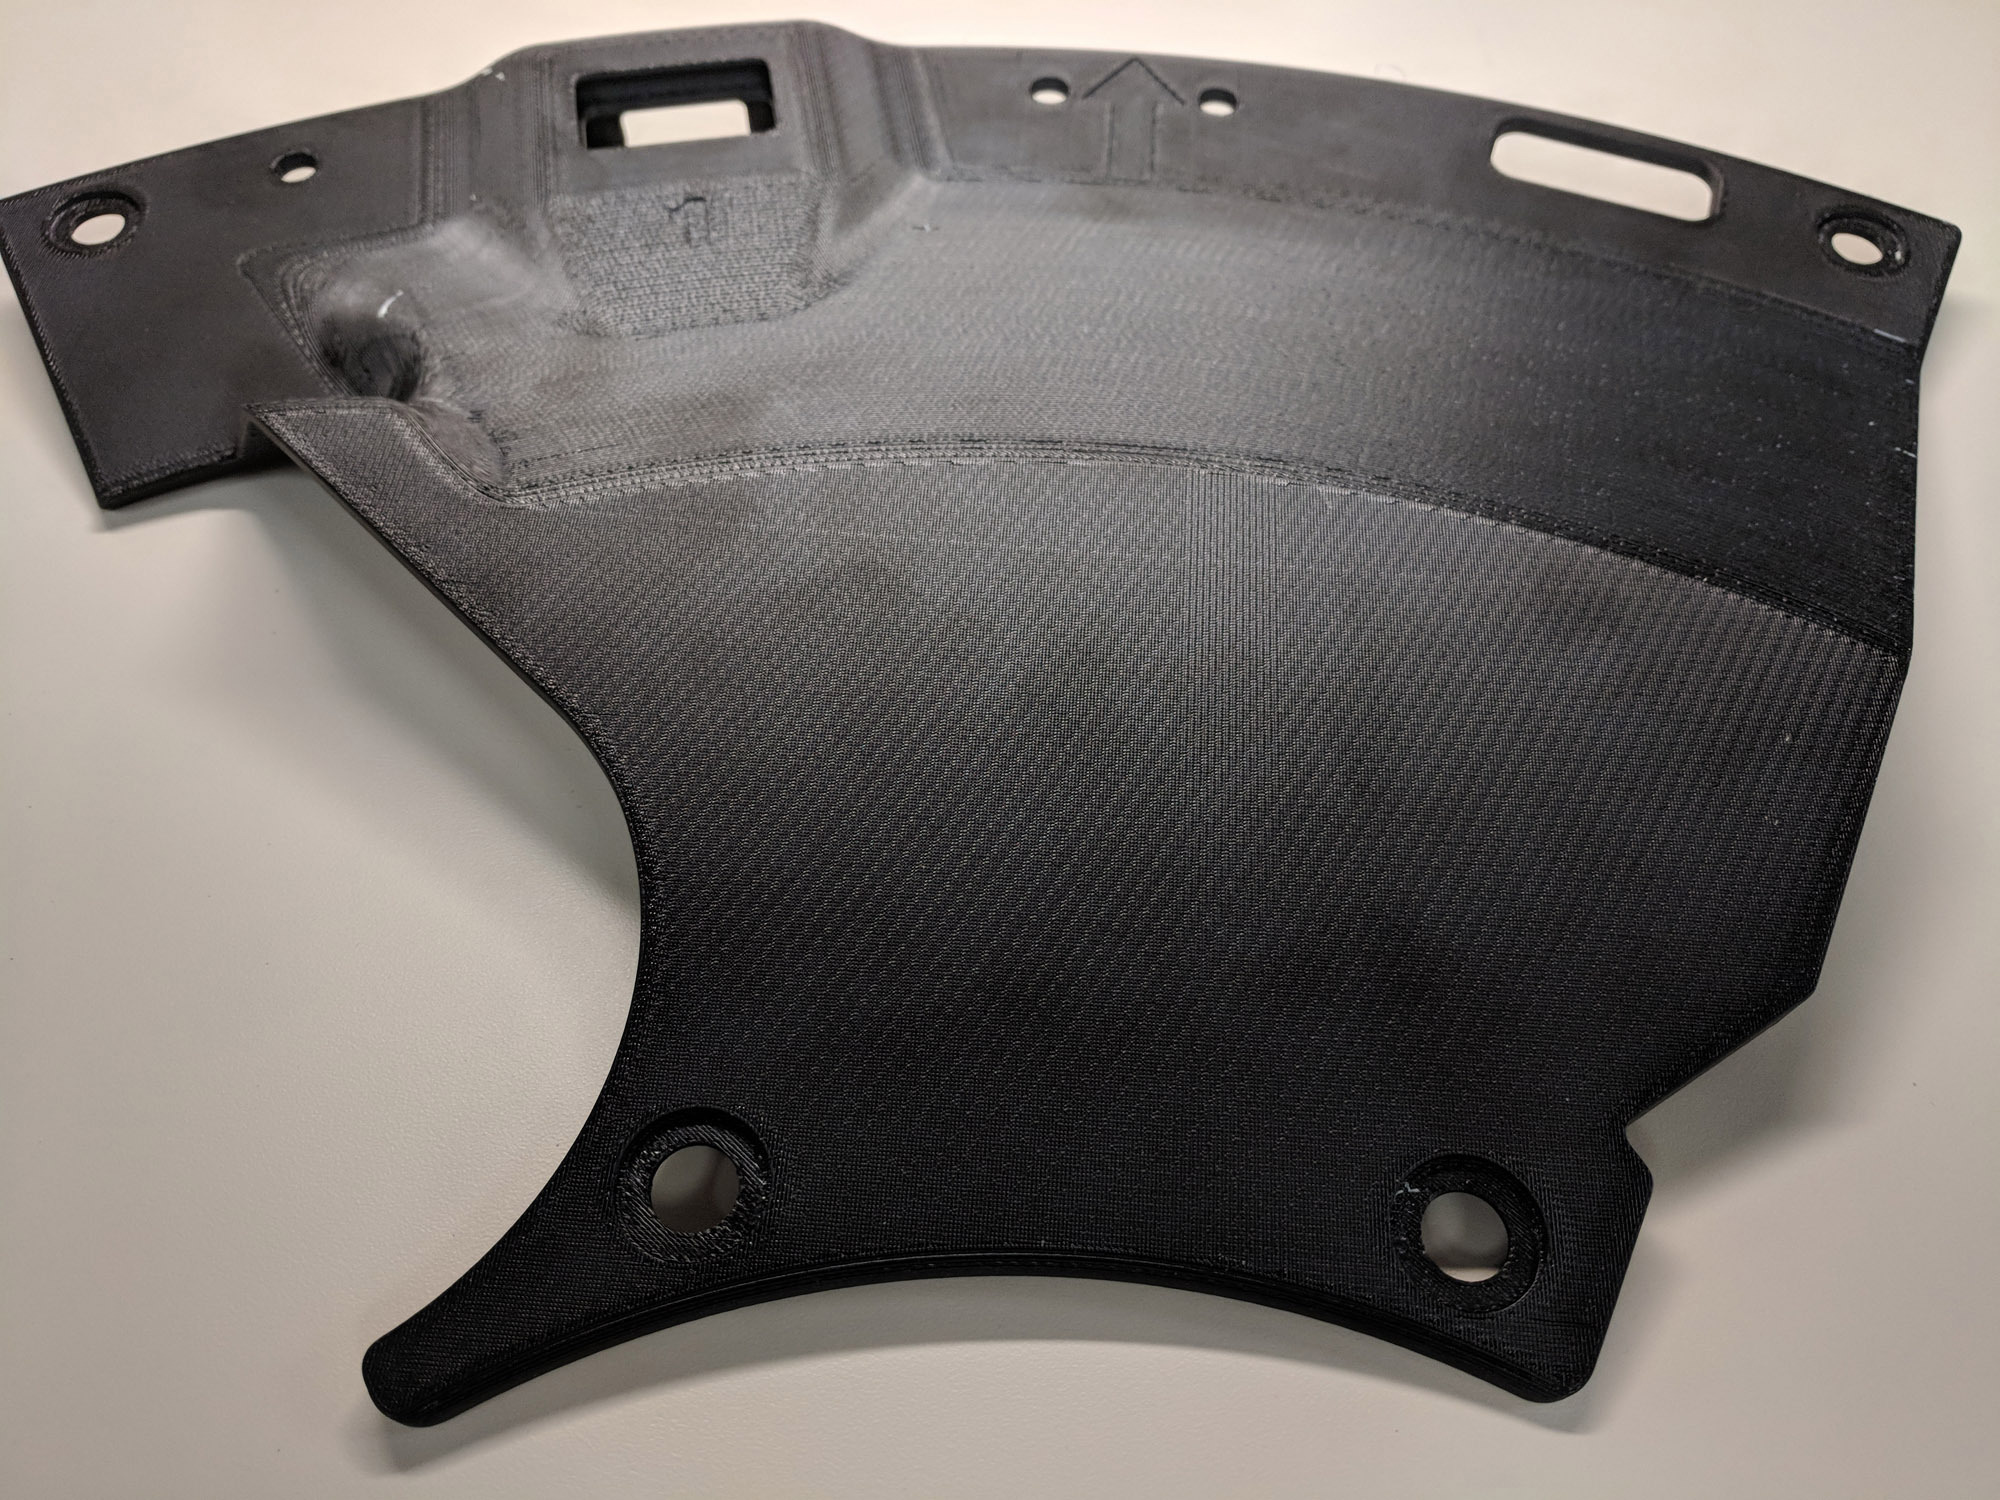 Lockheed Martin is one of the first customers leveraging Stratasys' Antero material - a PEKK-based thermoplastic with advanced mechanical, chemical and thermal properties.